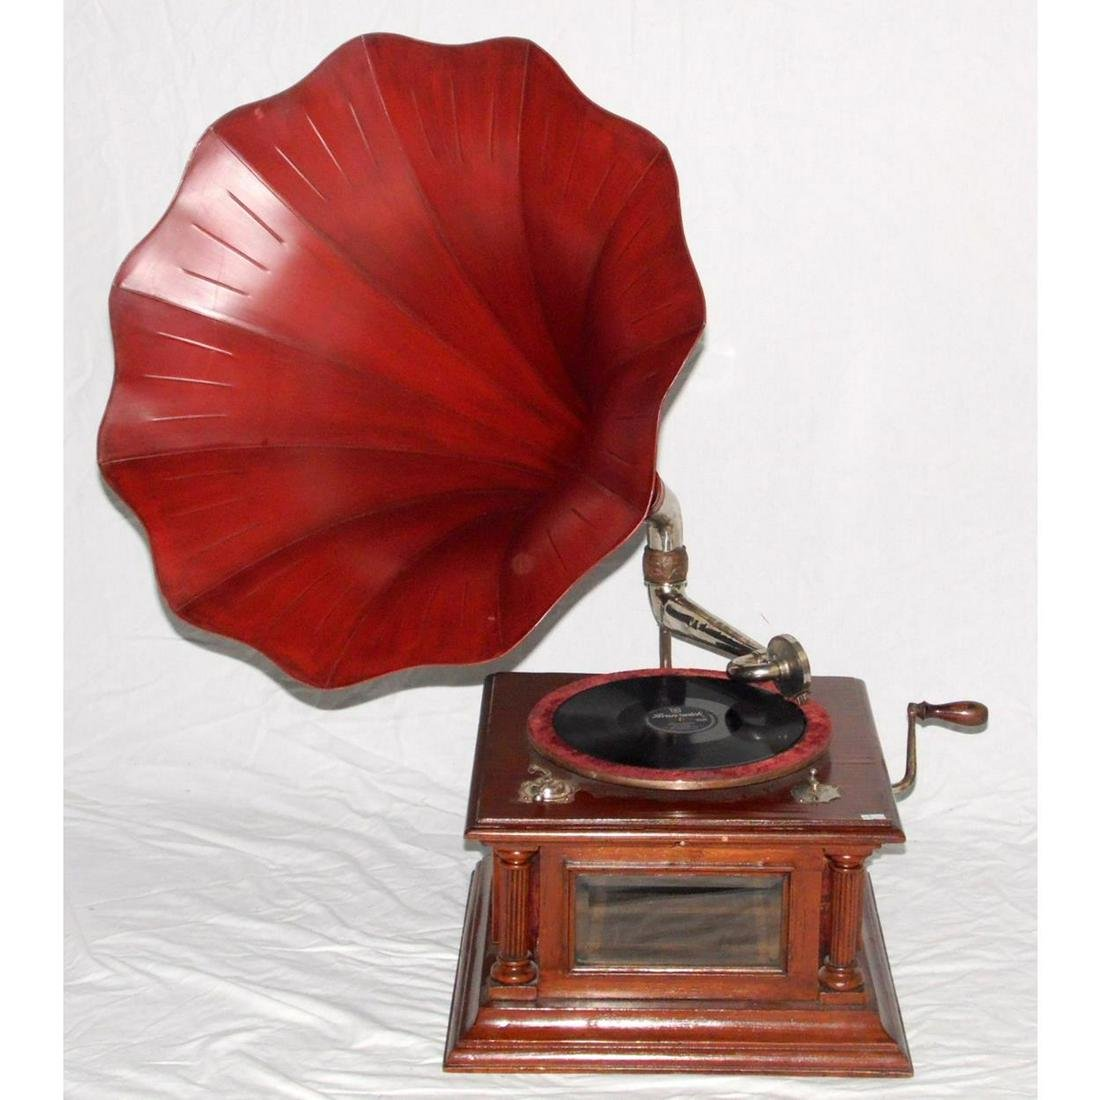 Early 20th century Wind up Table Top Gramophone